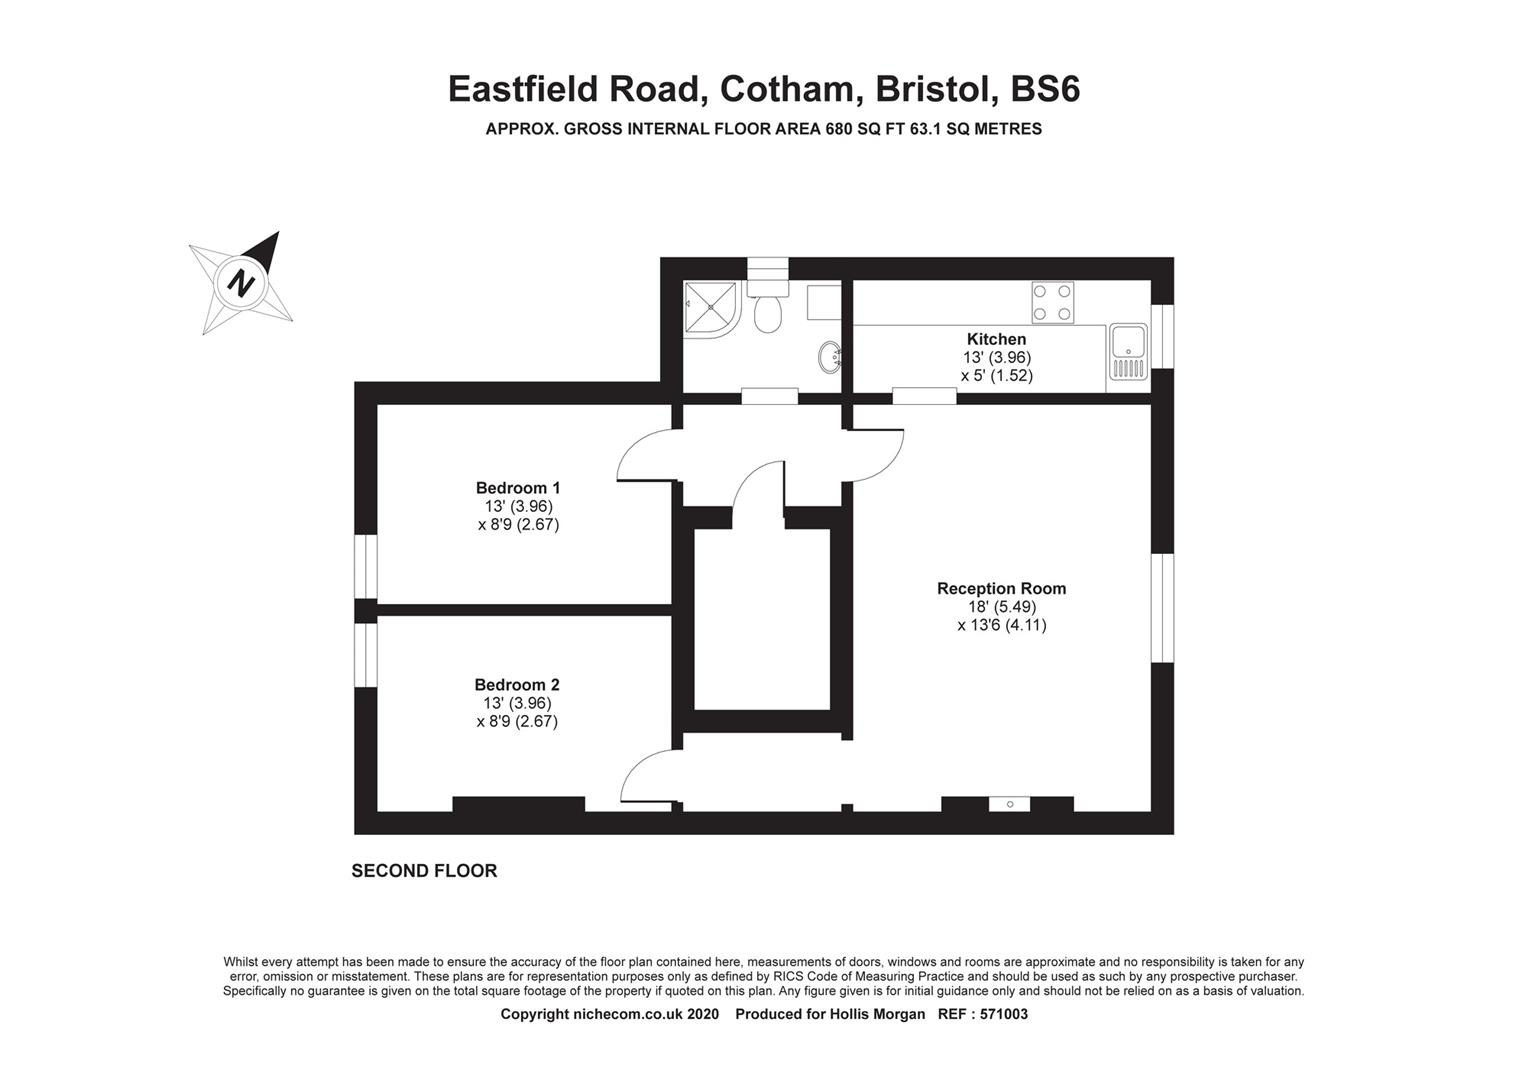 Floorplans For Eastfield Road, Cotham